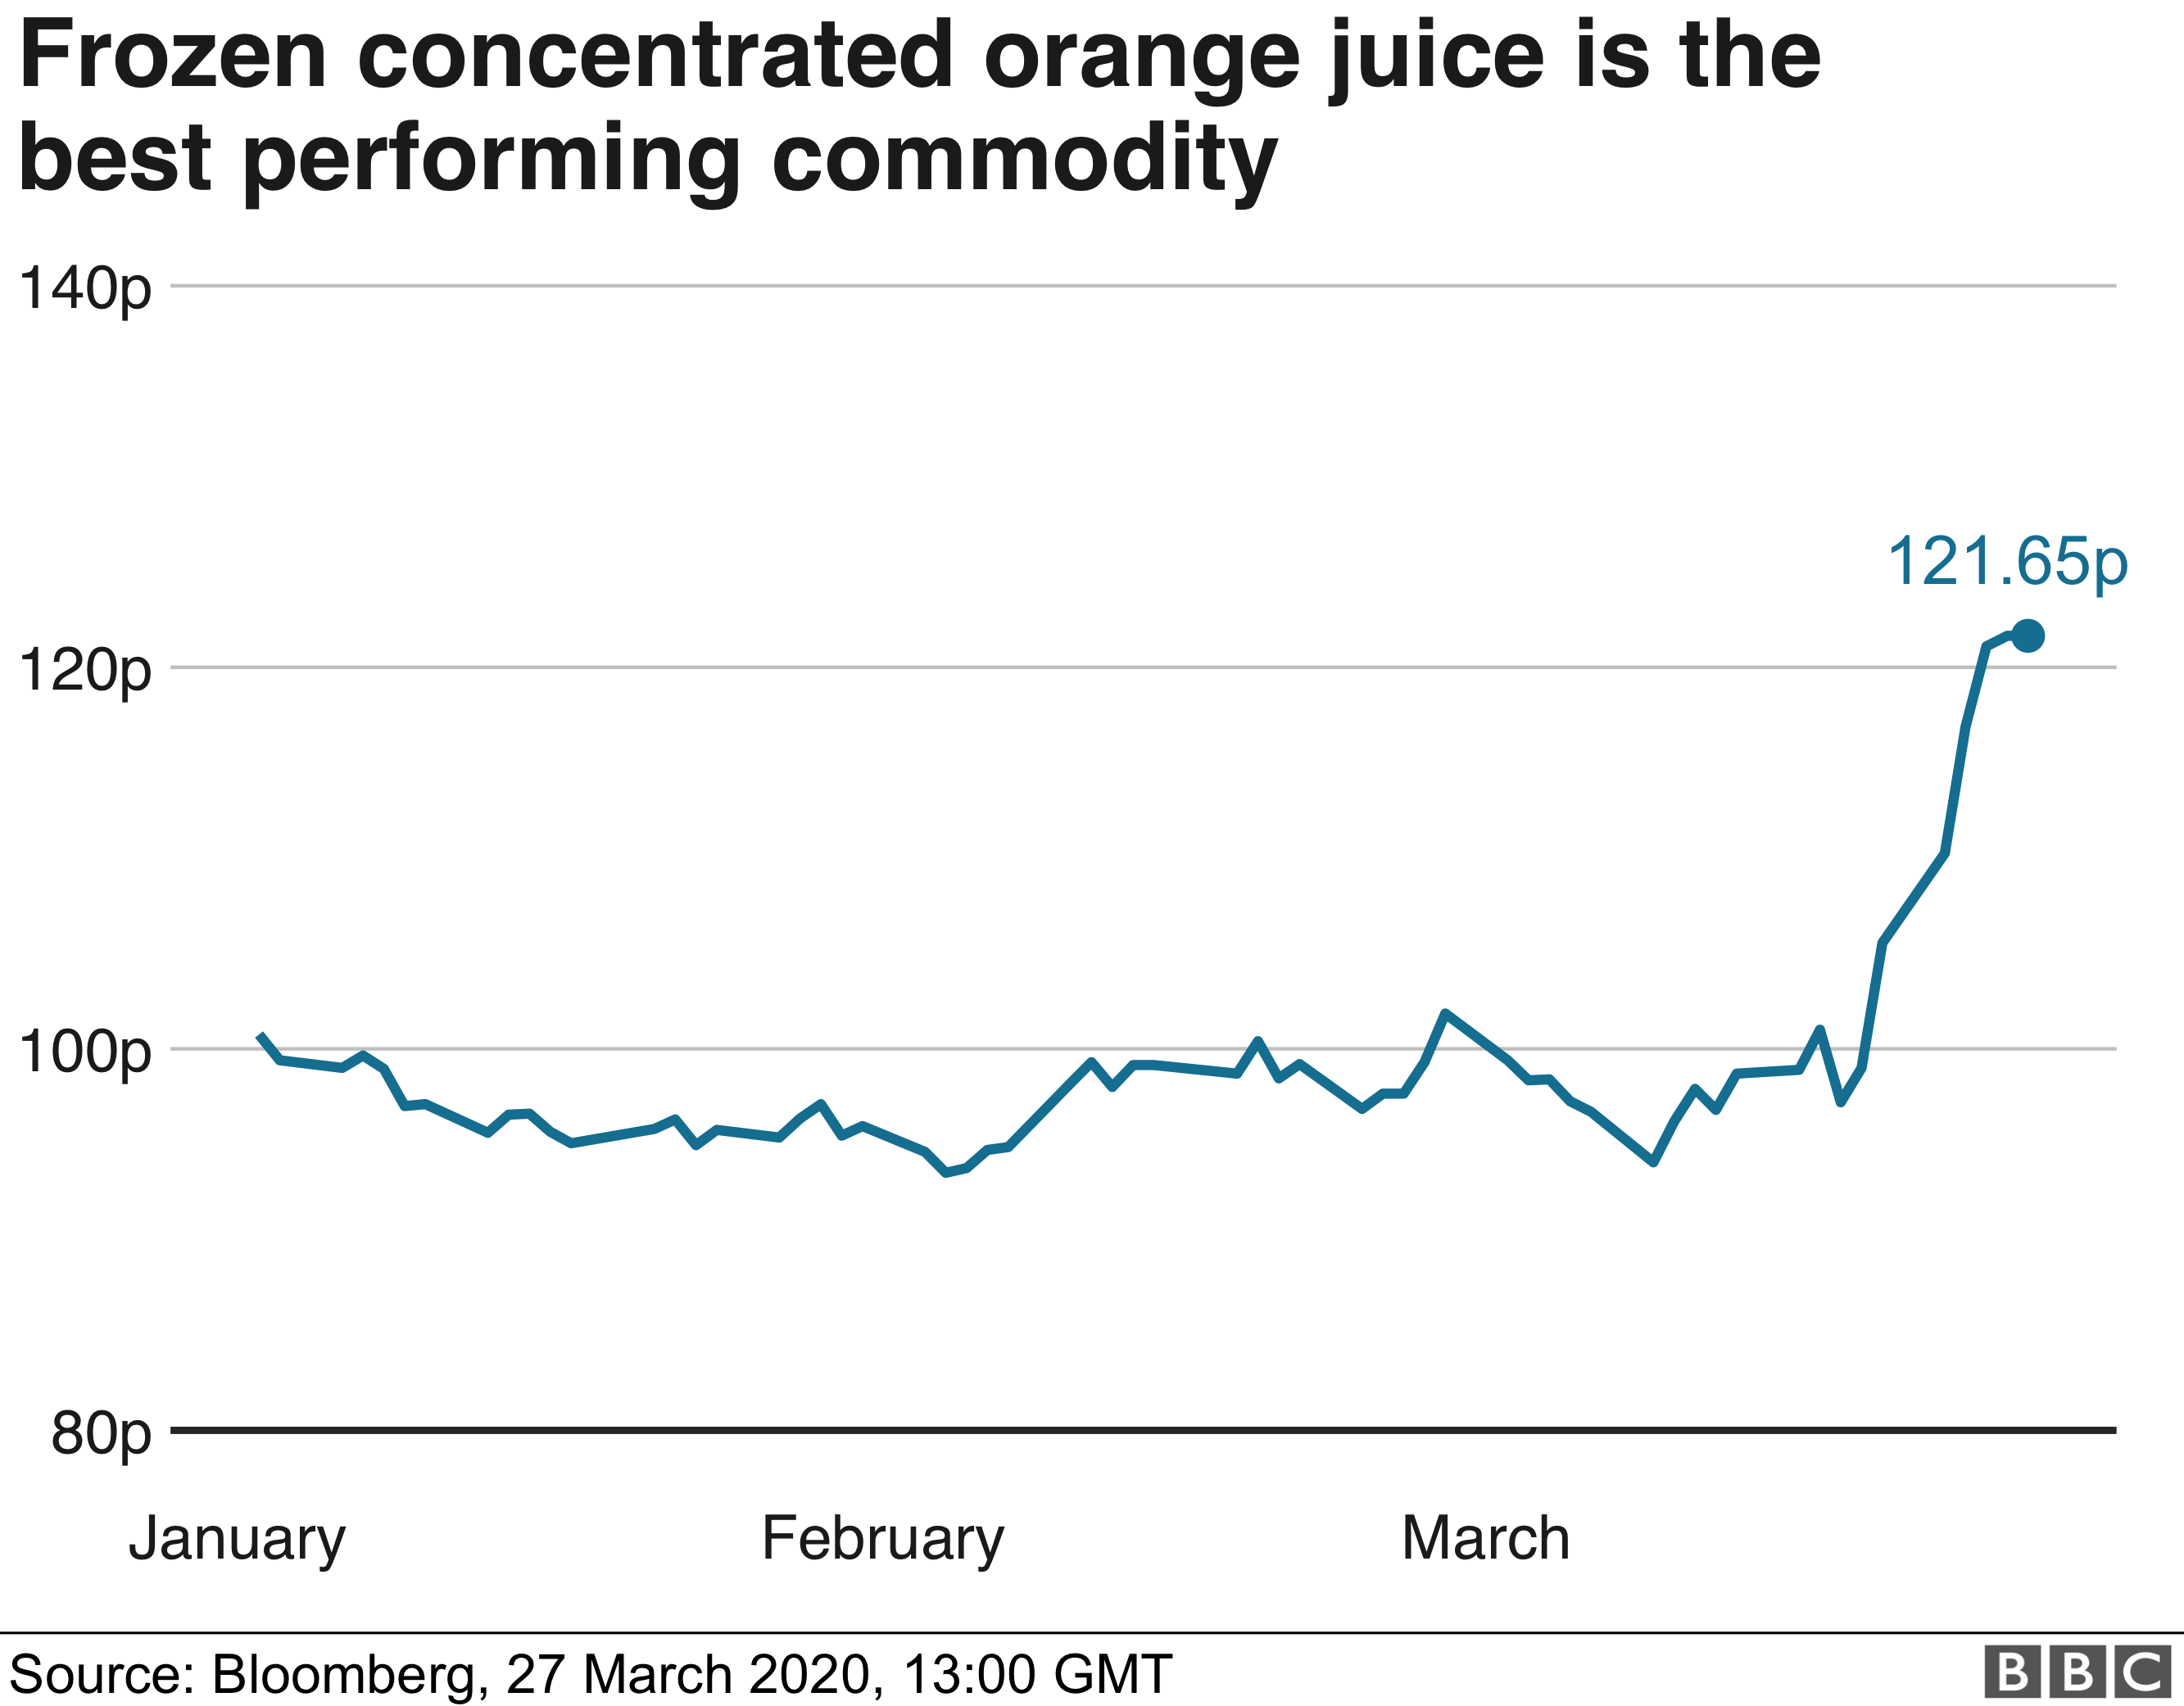 Chart showing Orange juice commodity value - 27 March